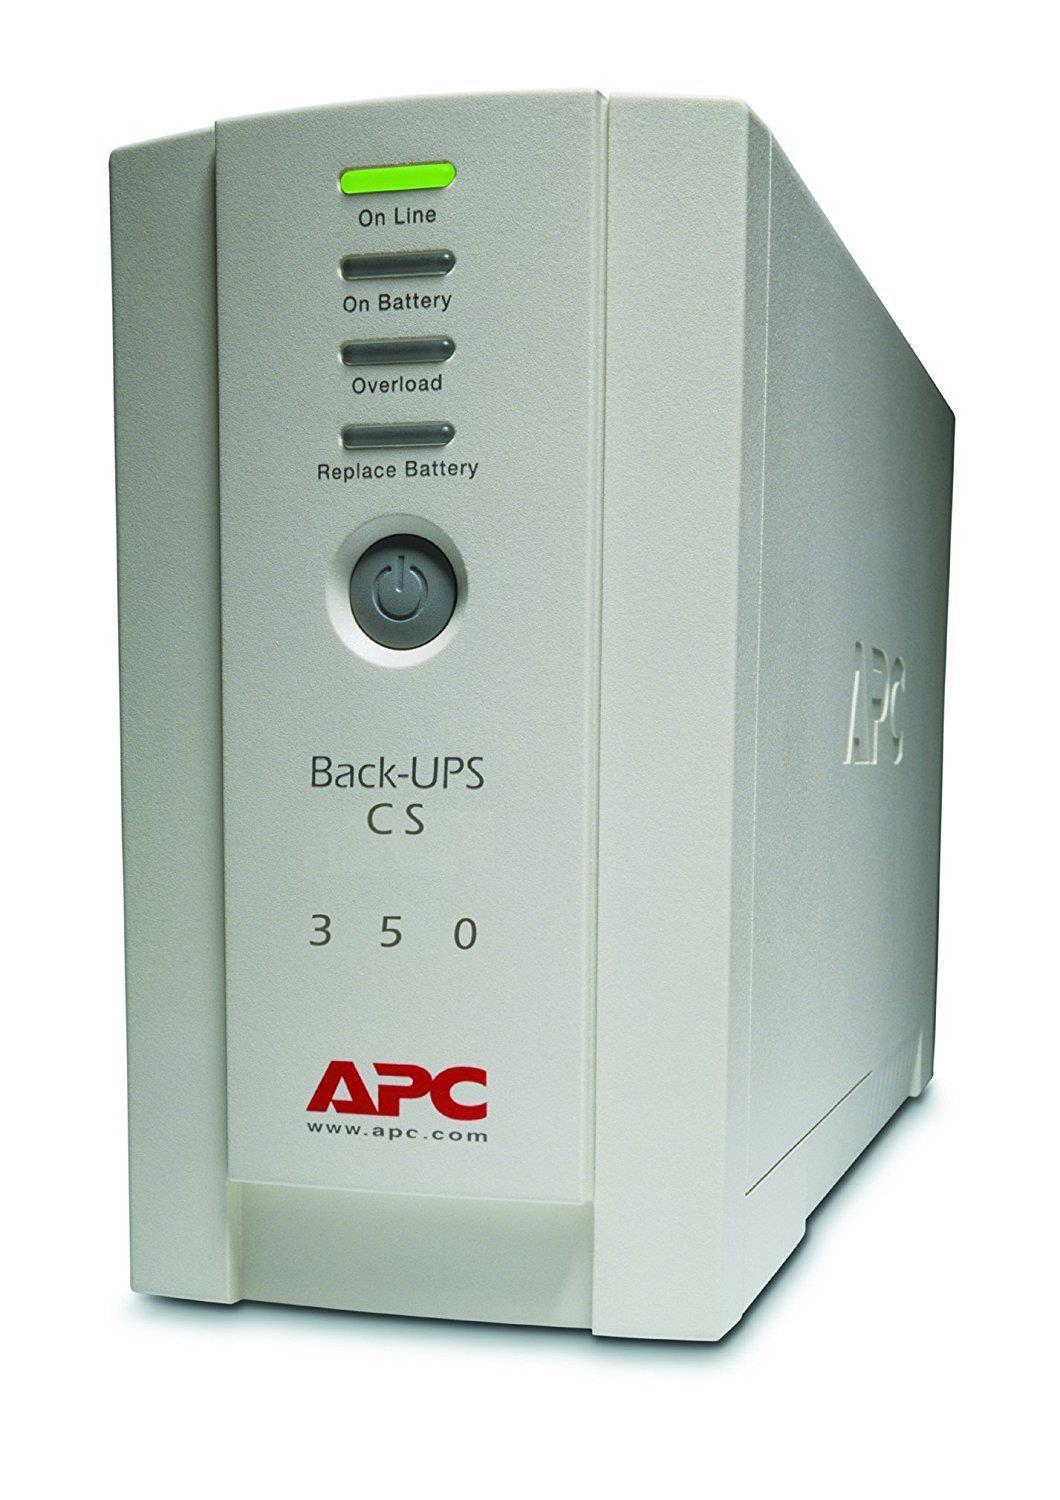 APC Back UPS CS 350VA USB or Serial  Data line Surge Protection